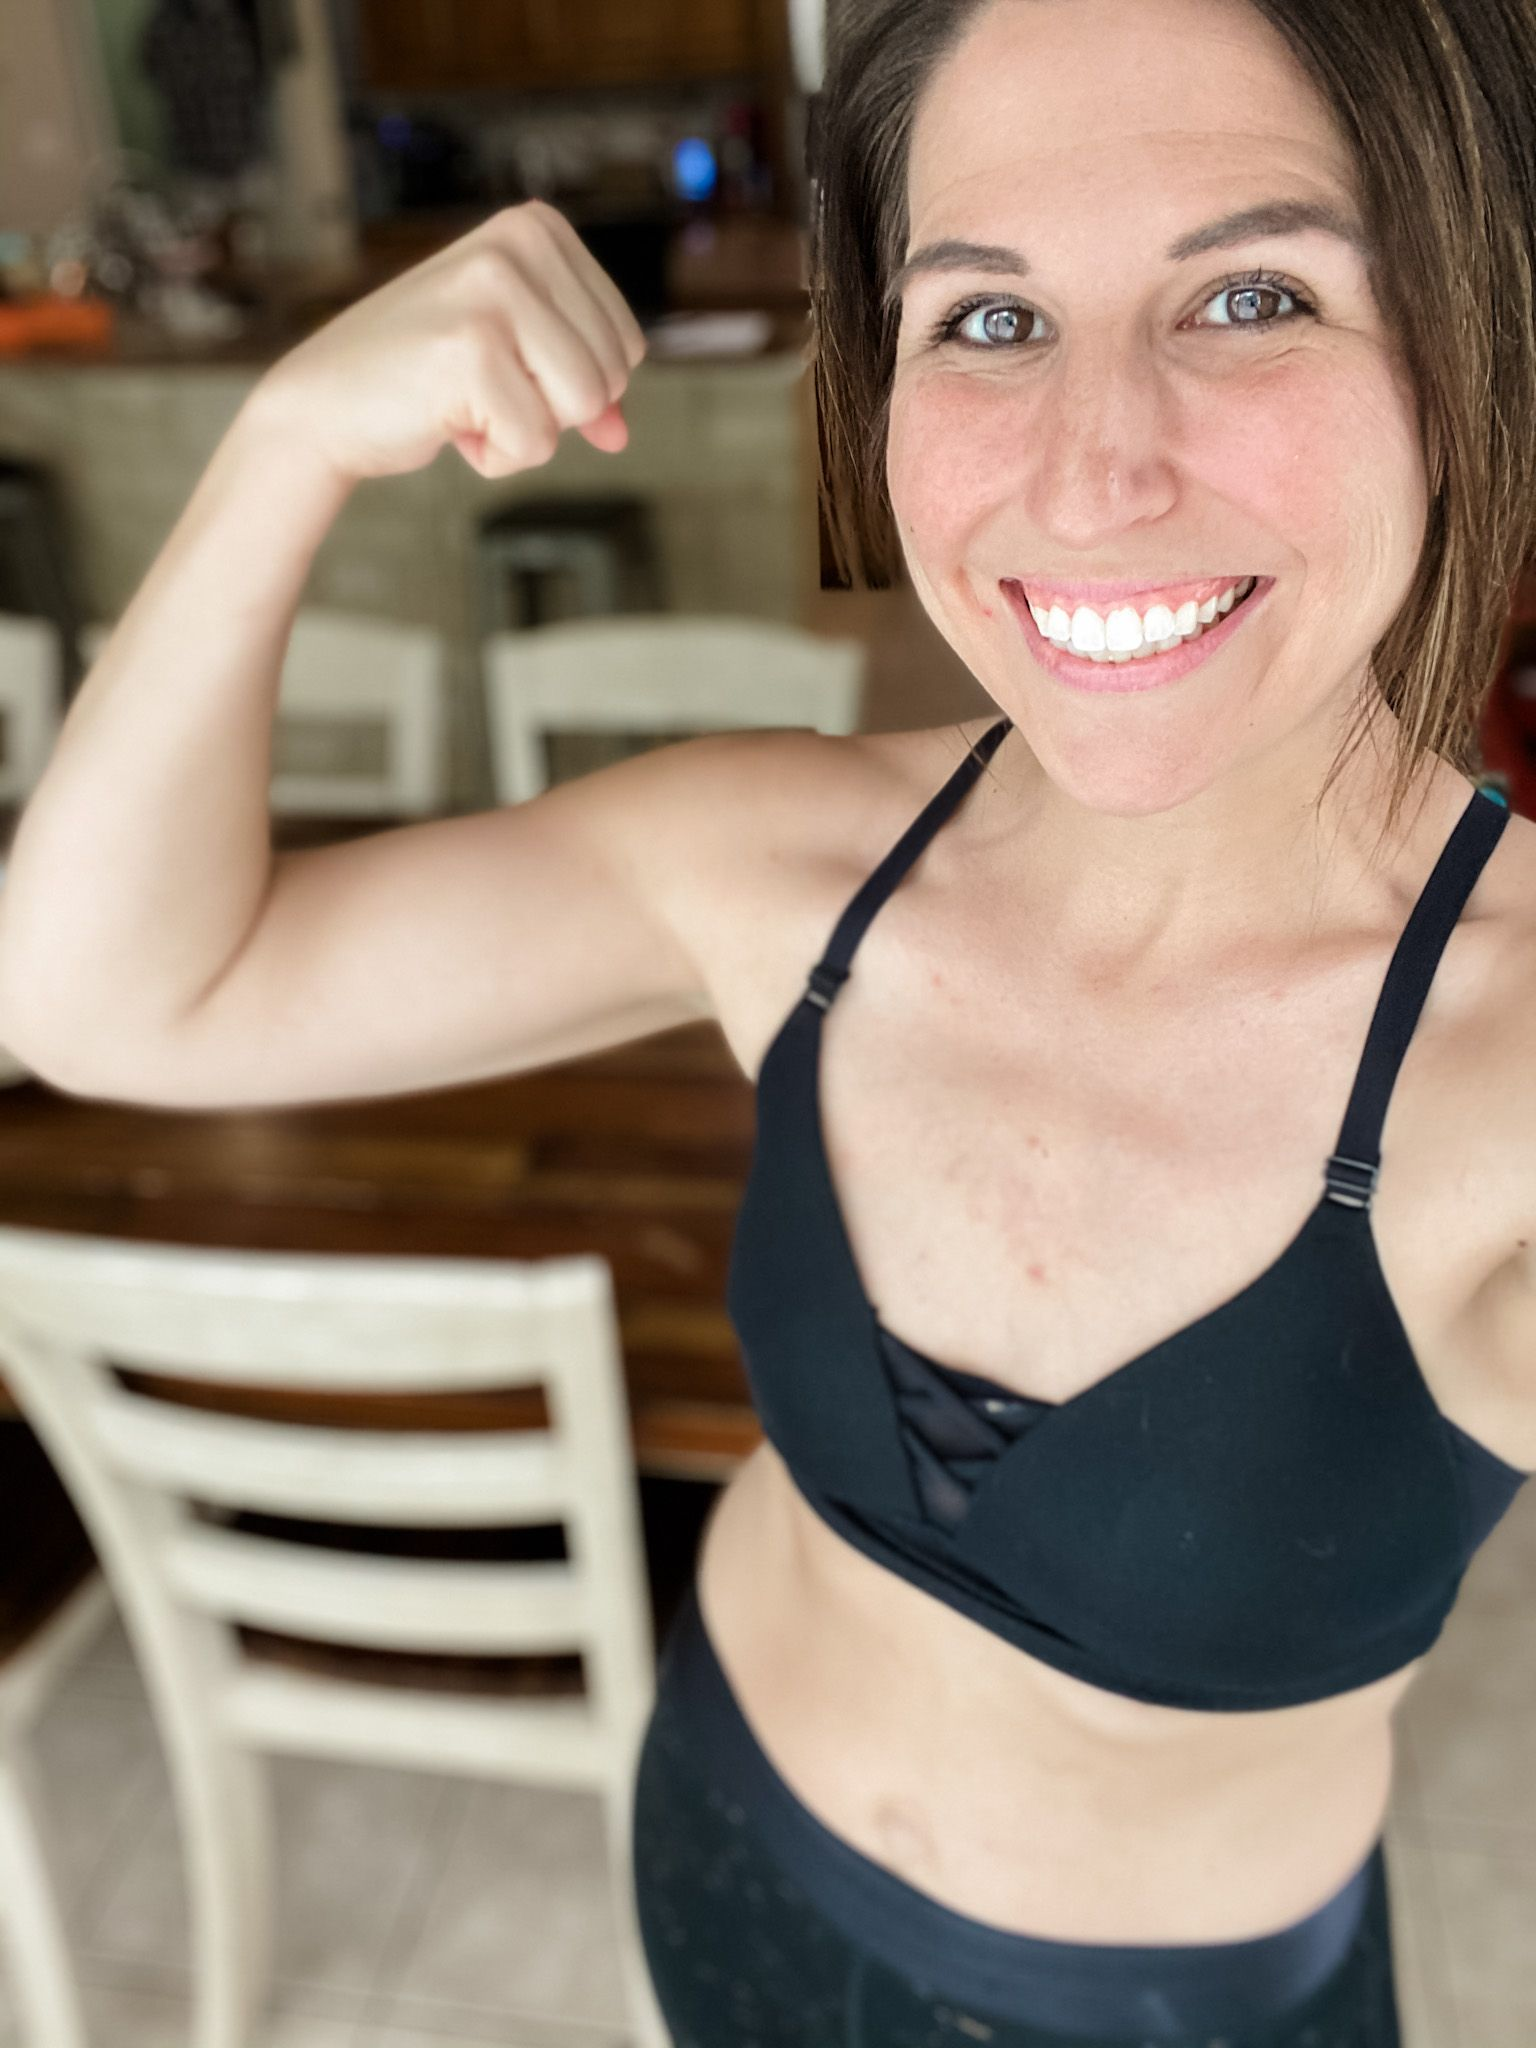 At Home Upper Body Workout Upper Body Workout Fitness Body Upper Body